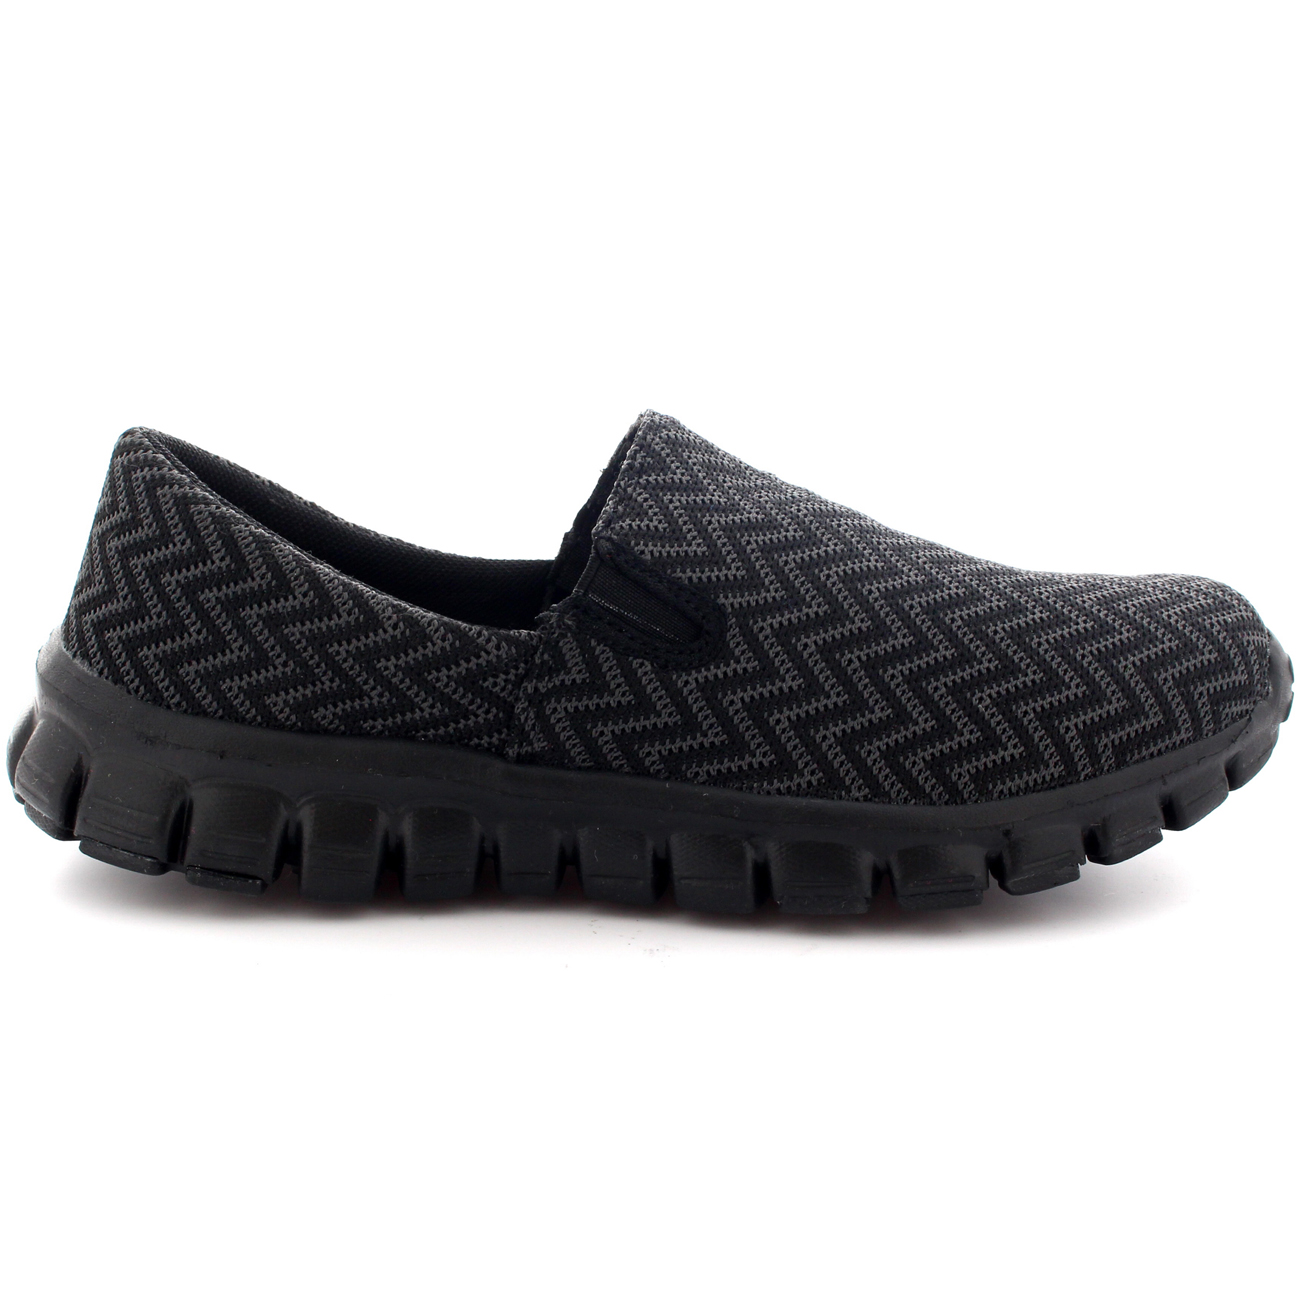 mens sports slip on shoes walking office